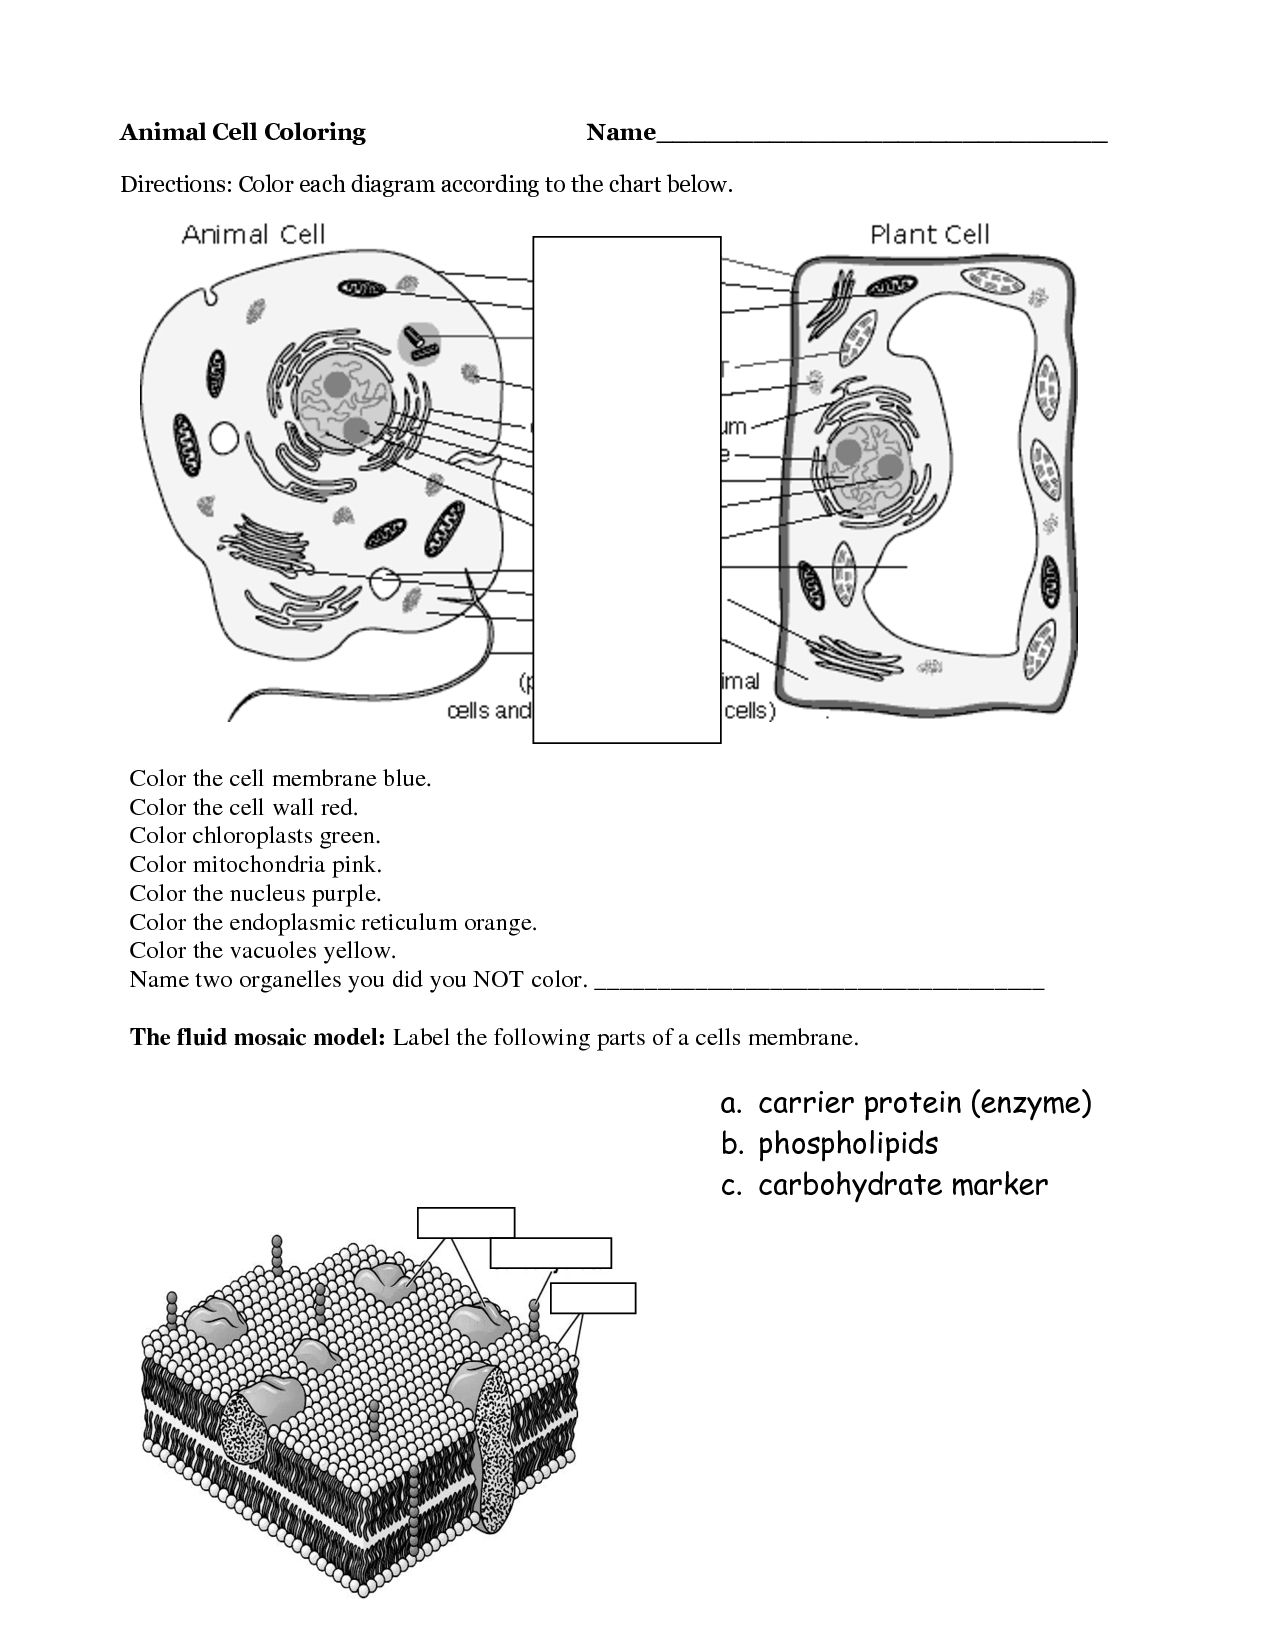 Animal Cell Coloring Page Coloring Home – Plant and Animal Cell Diagram Worksheet